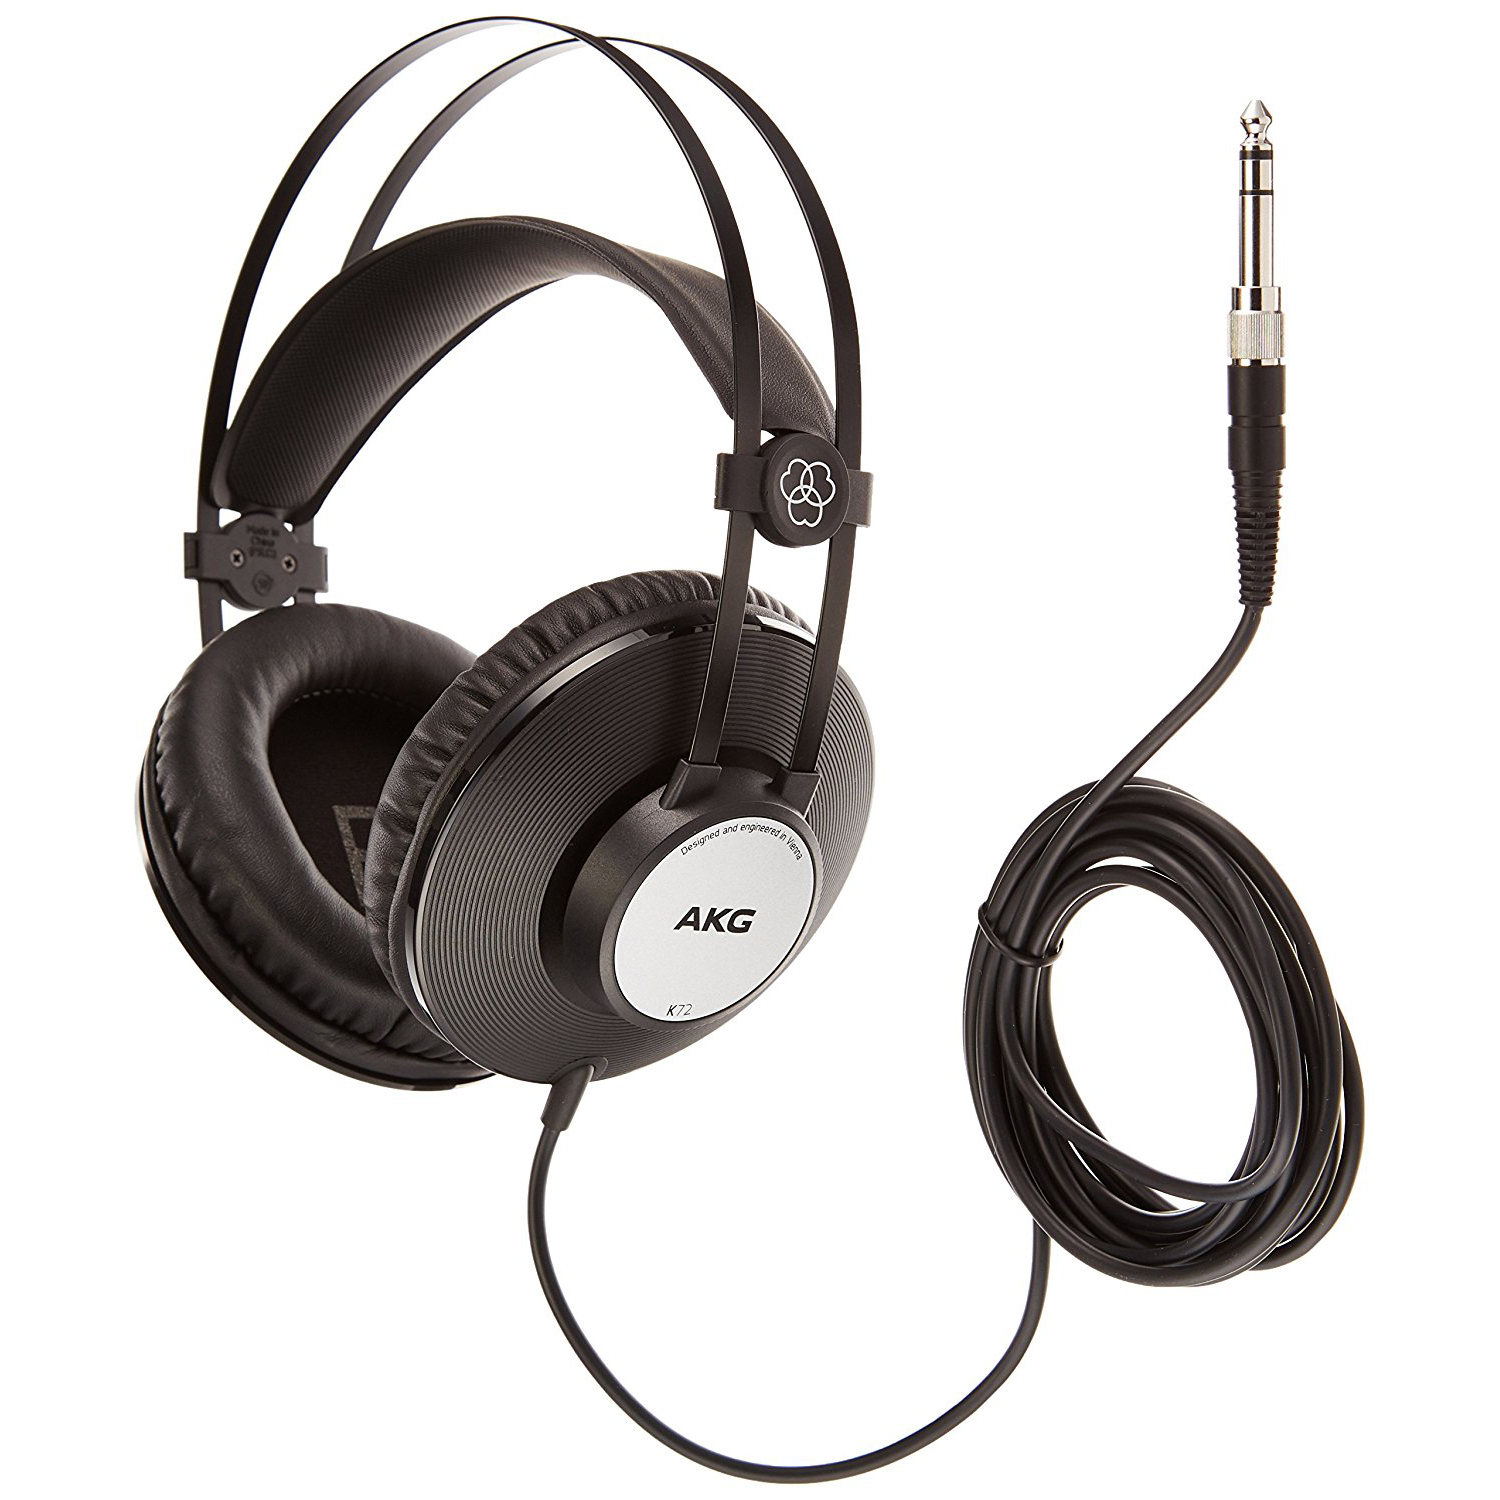 AKG K72 vs AKG K52 – Which Headphones are Better?